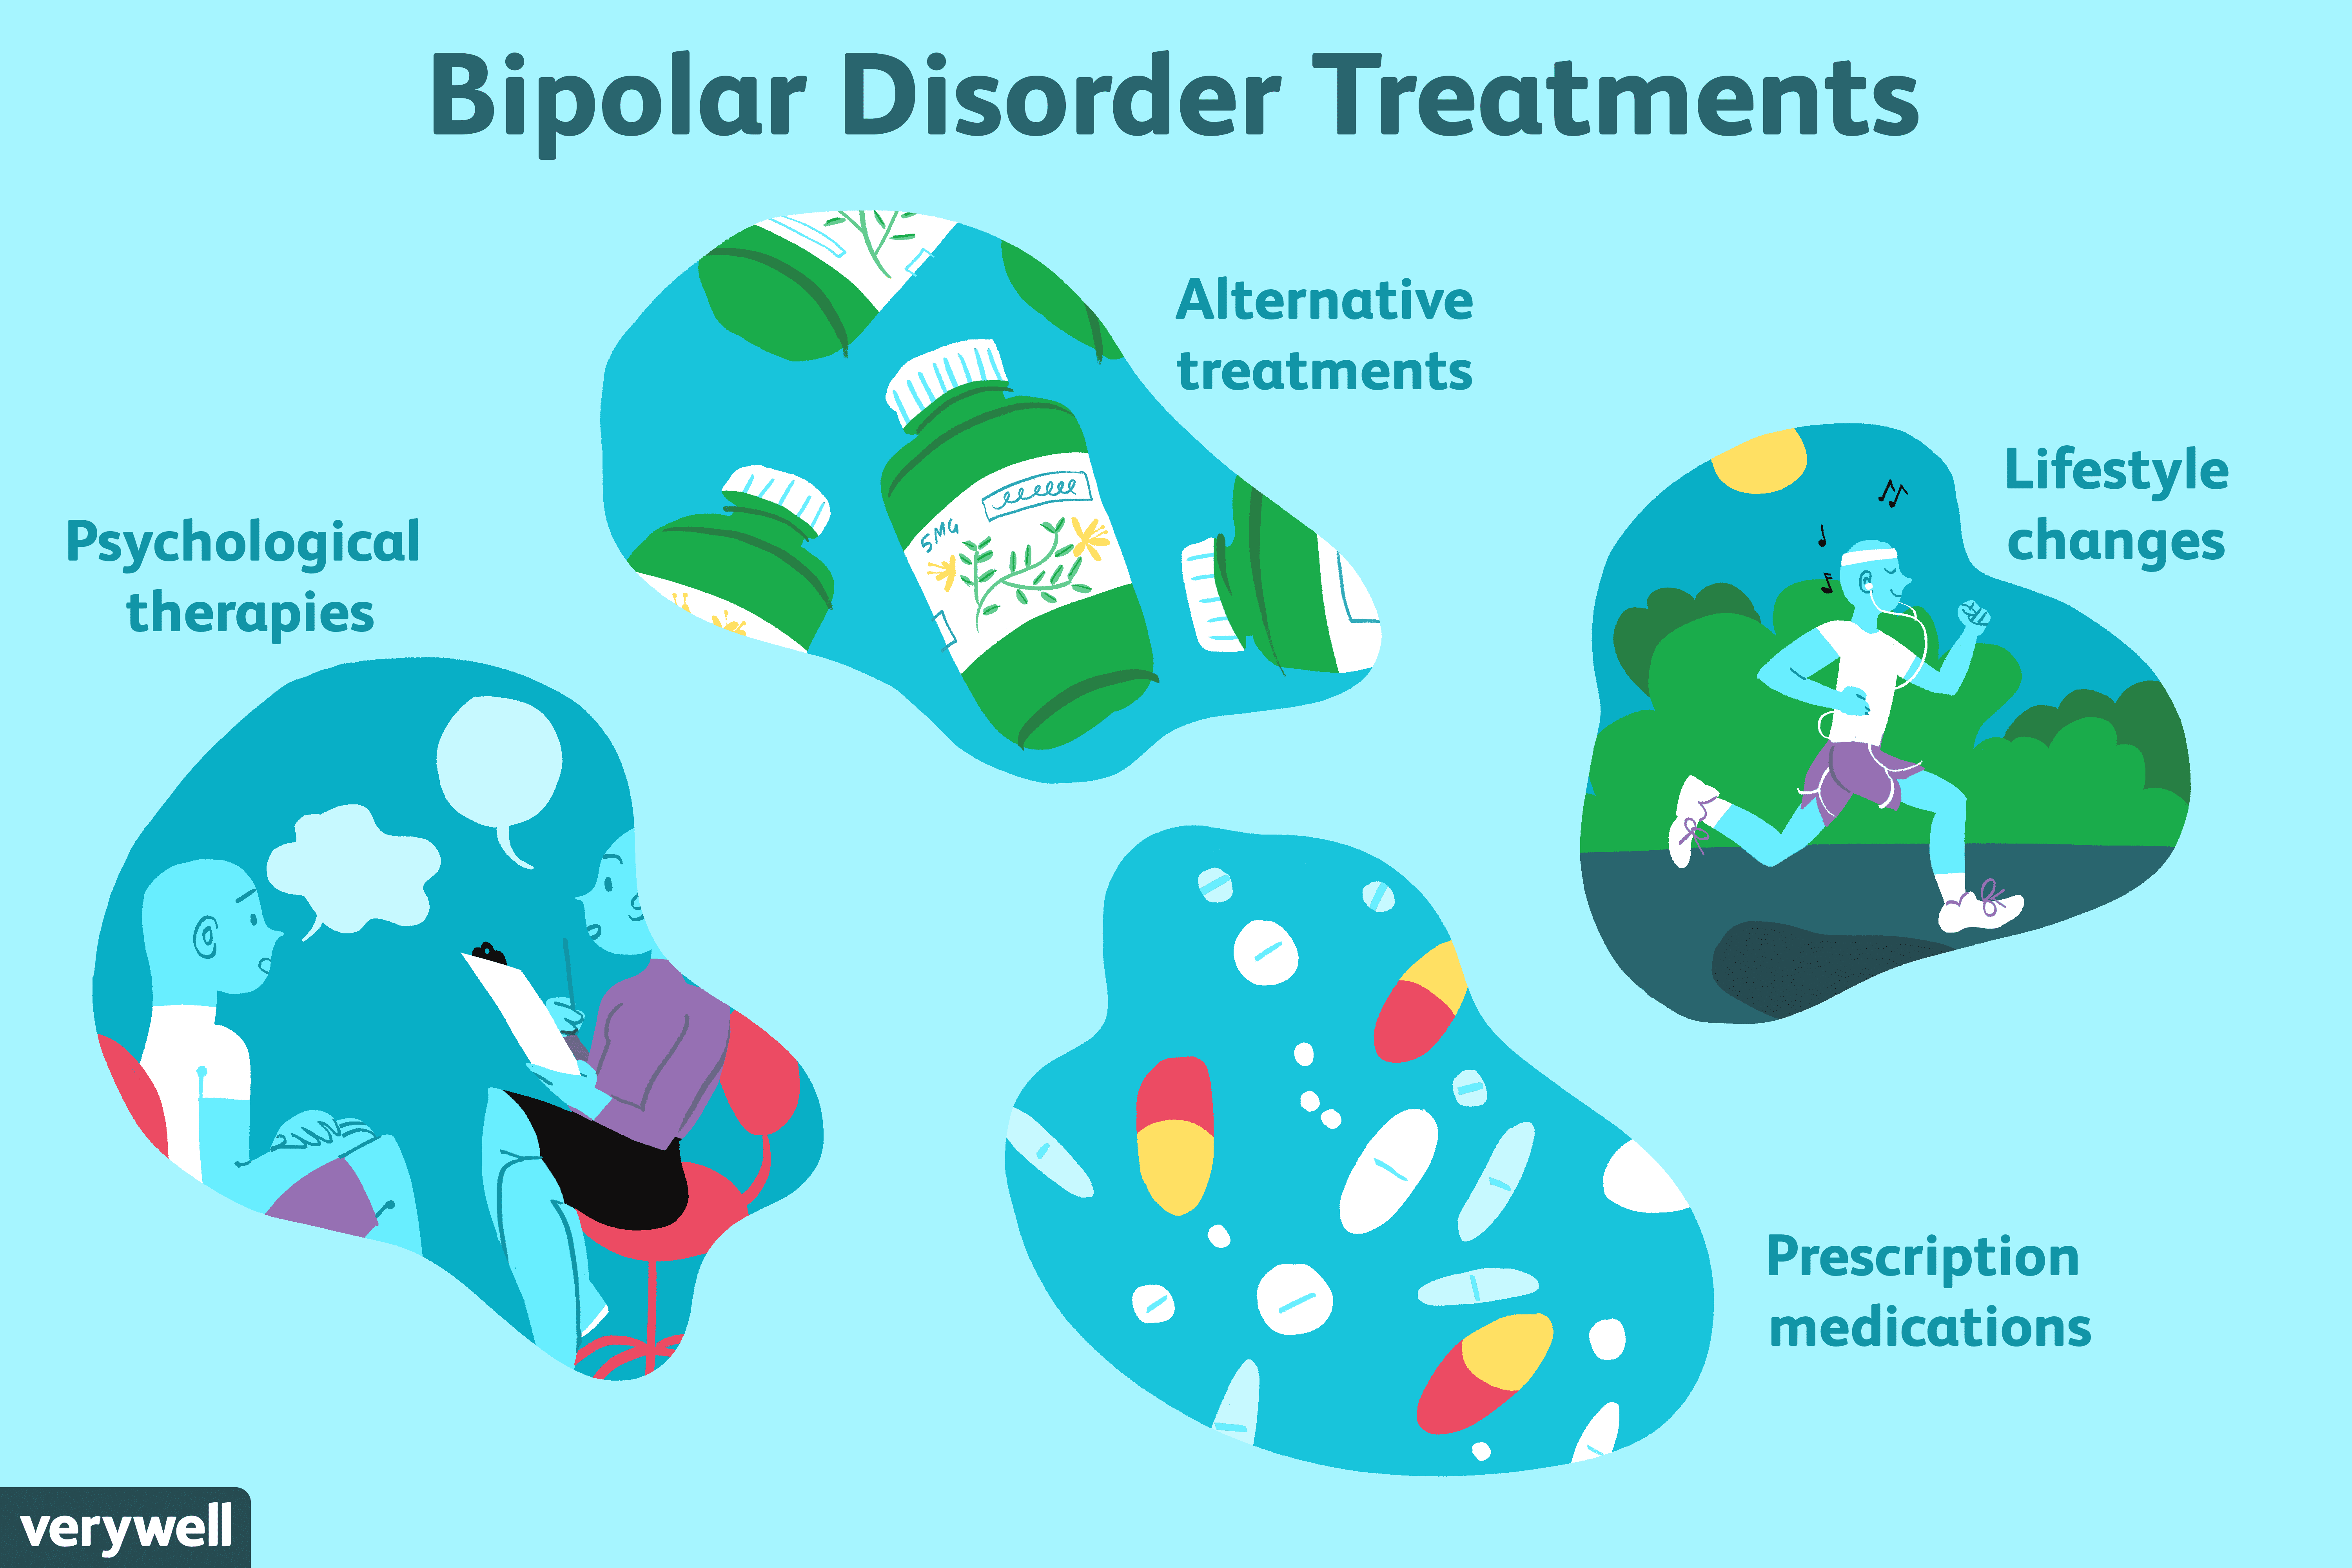 How Is Bipolar Disorder Treated?